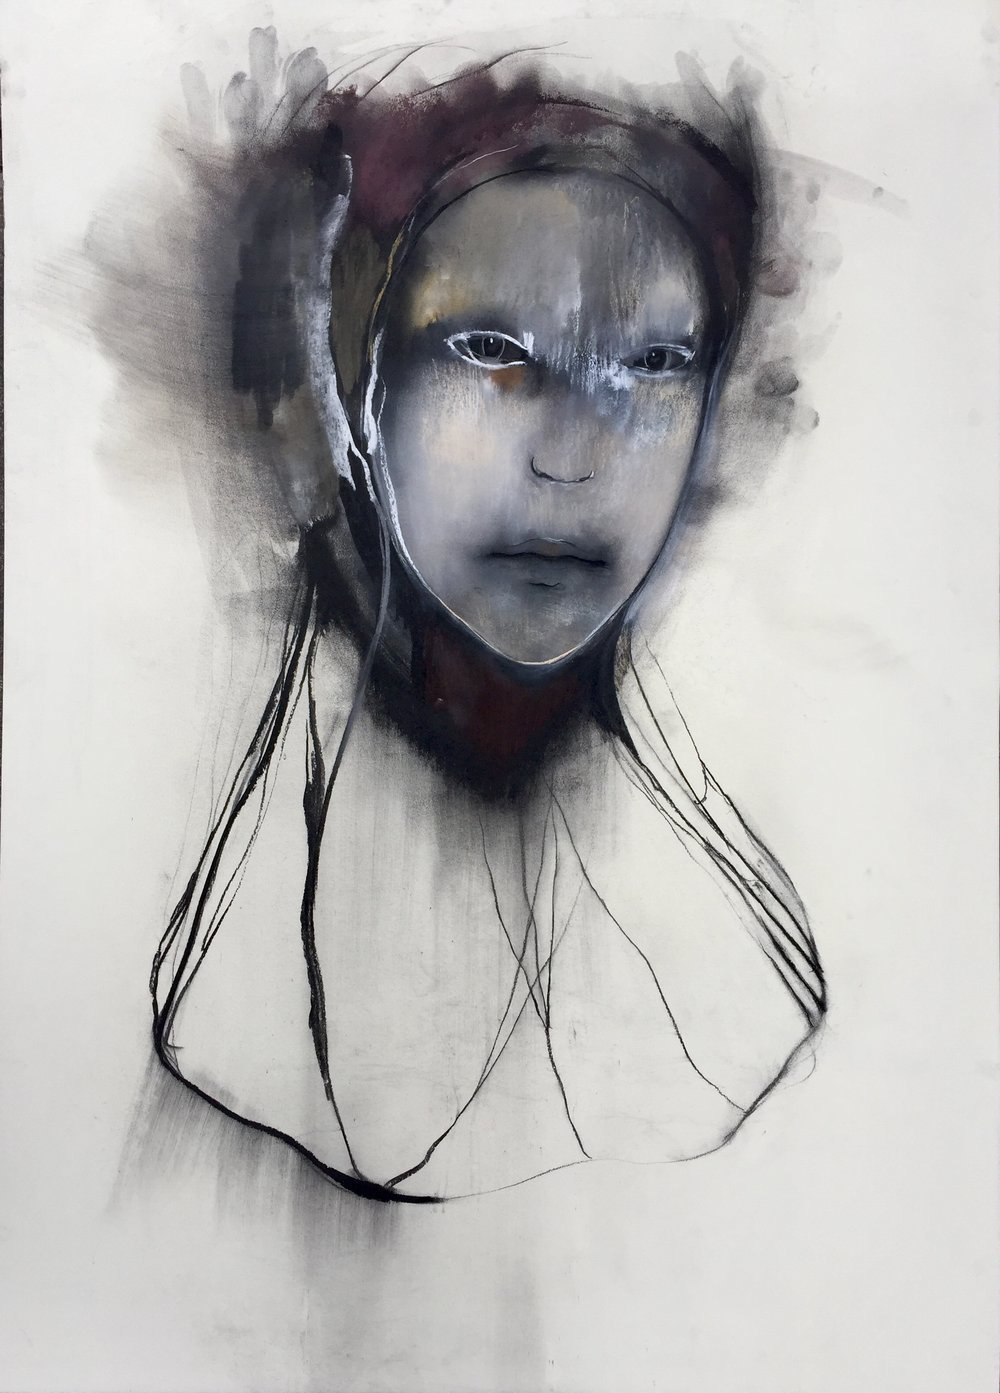 Persona , 146 x 107 cm. Charcoal and pastel on paper, 2018